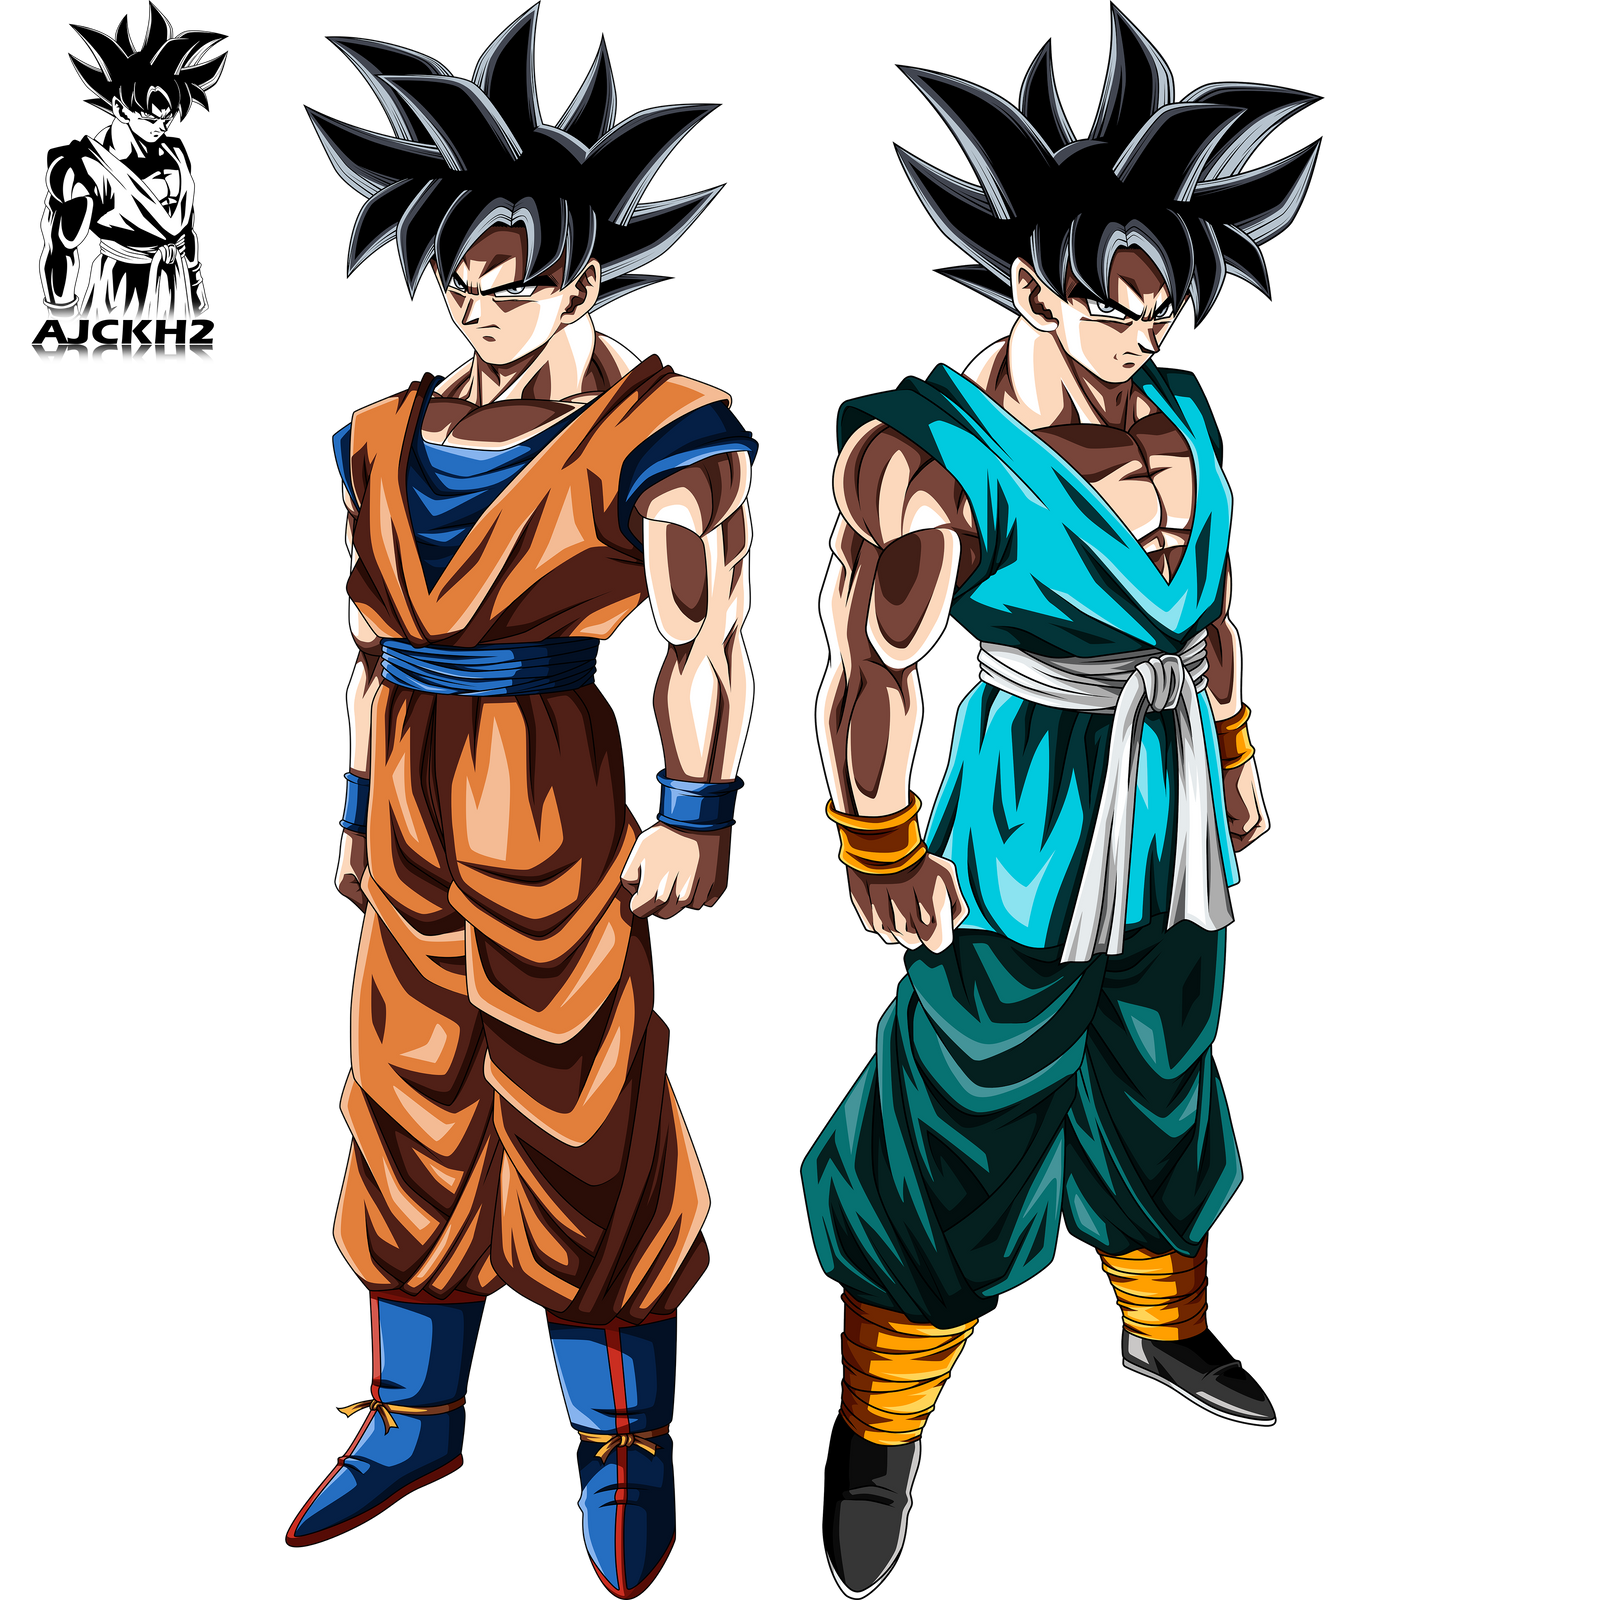 Dragon Ball Super Ultra Instinct Drawing: Son Goku Ultra Instinct Forms By Ajckh2 On DeviantArt